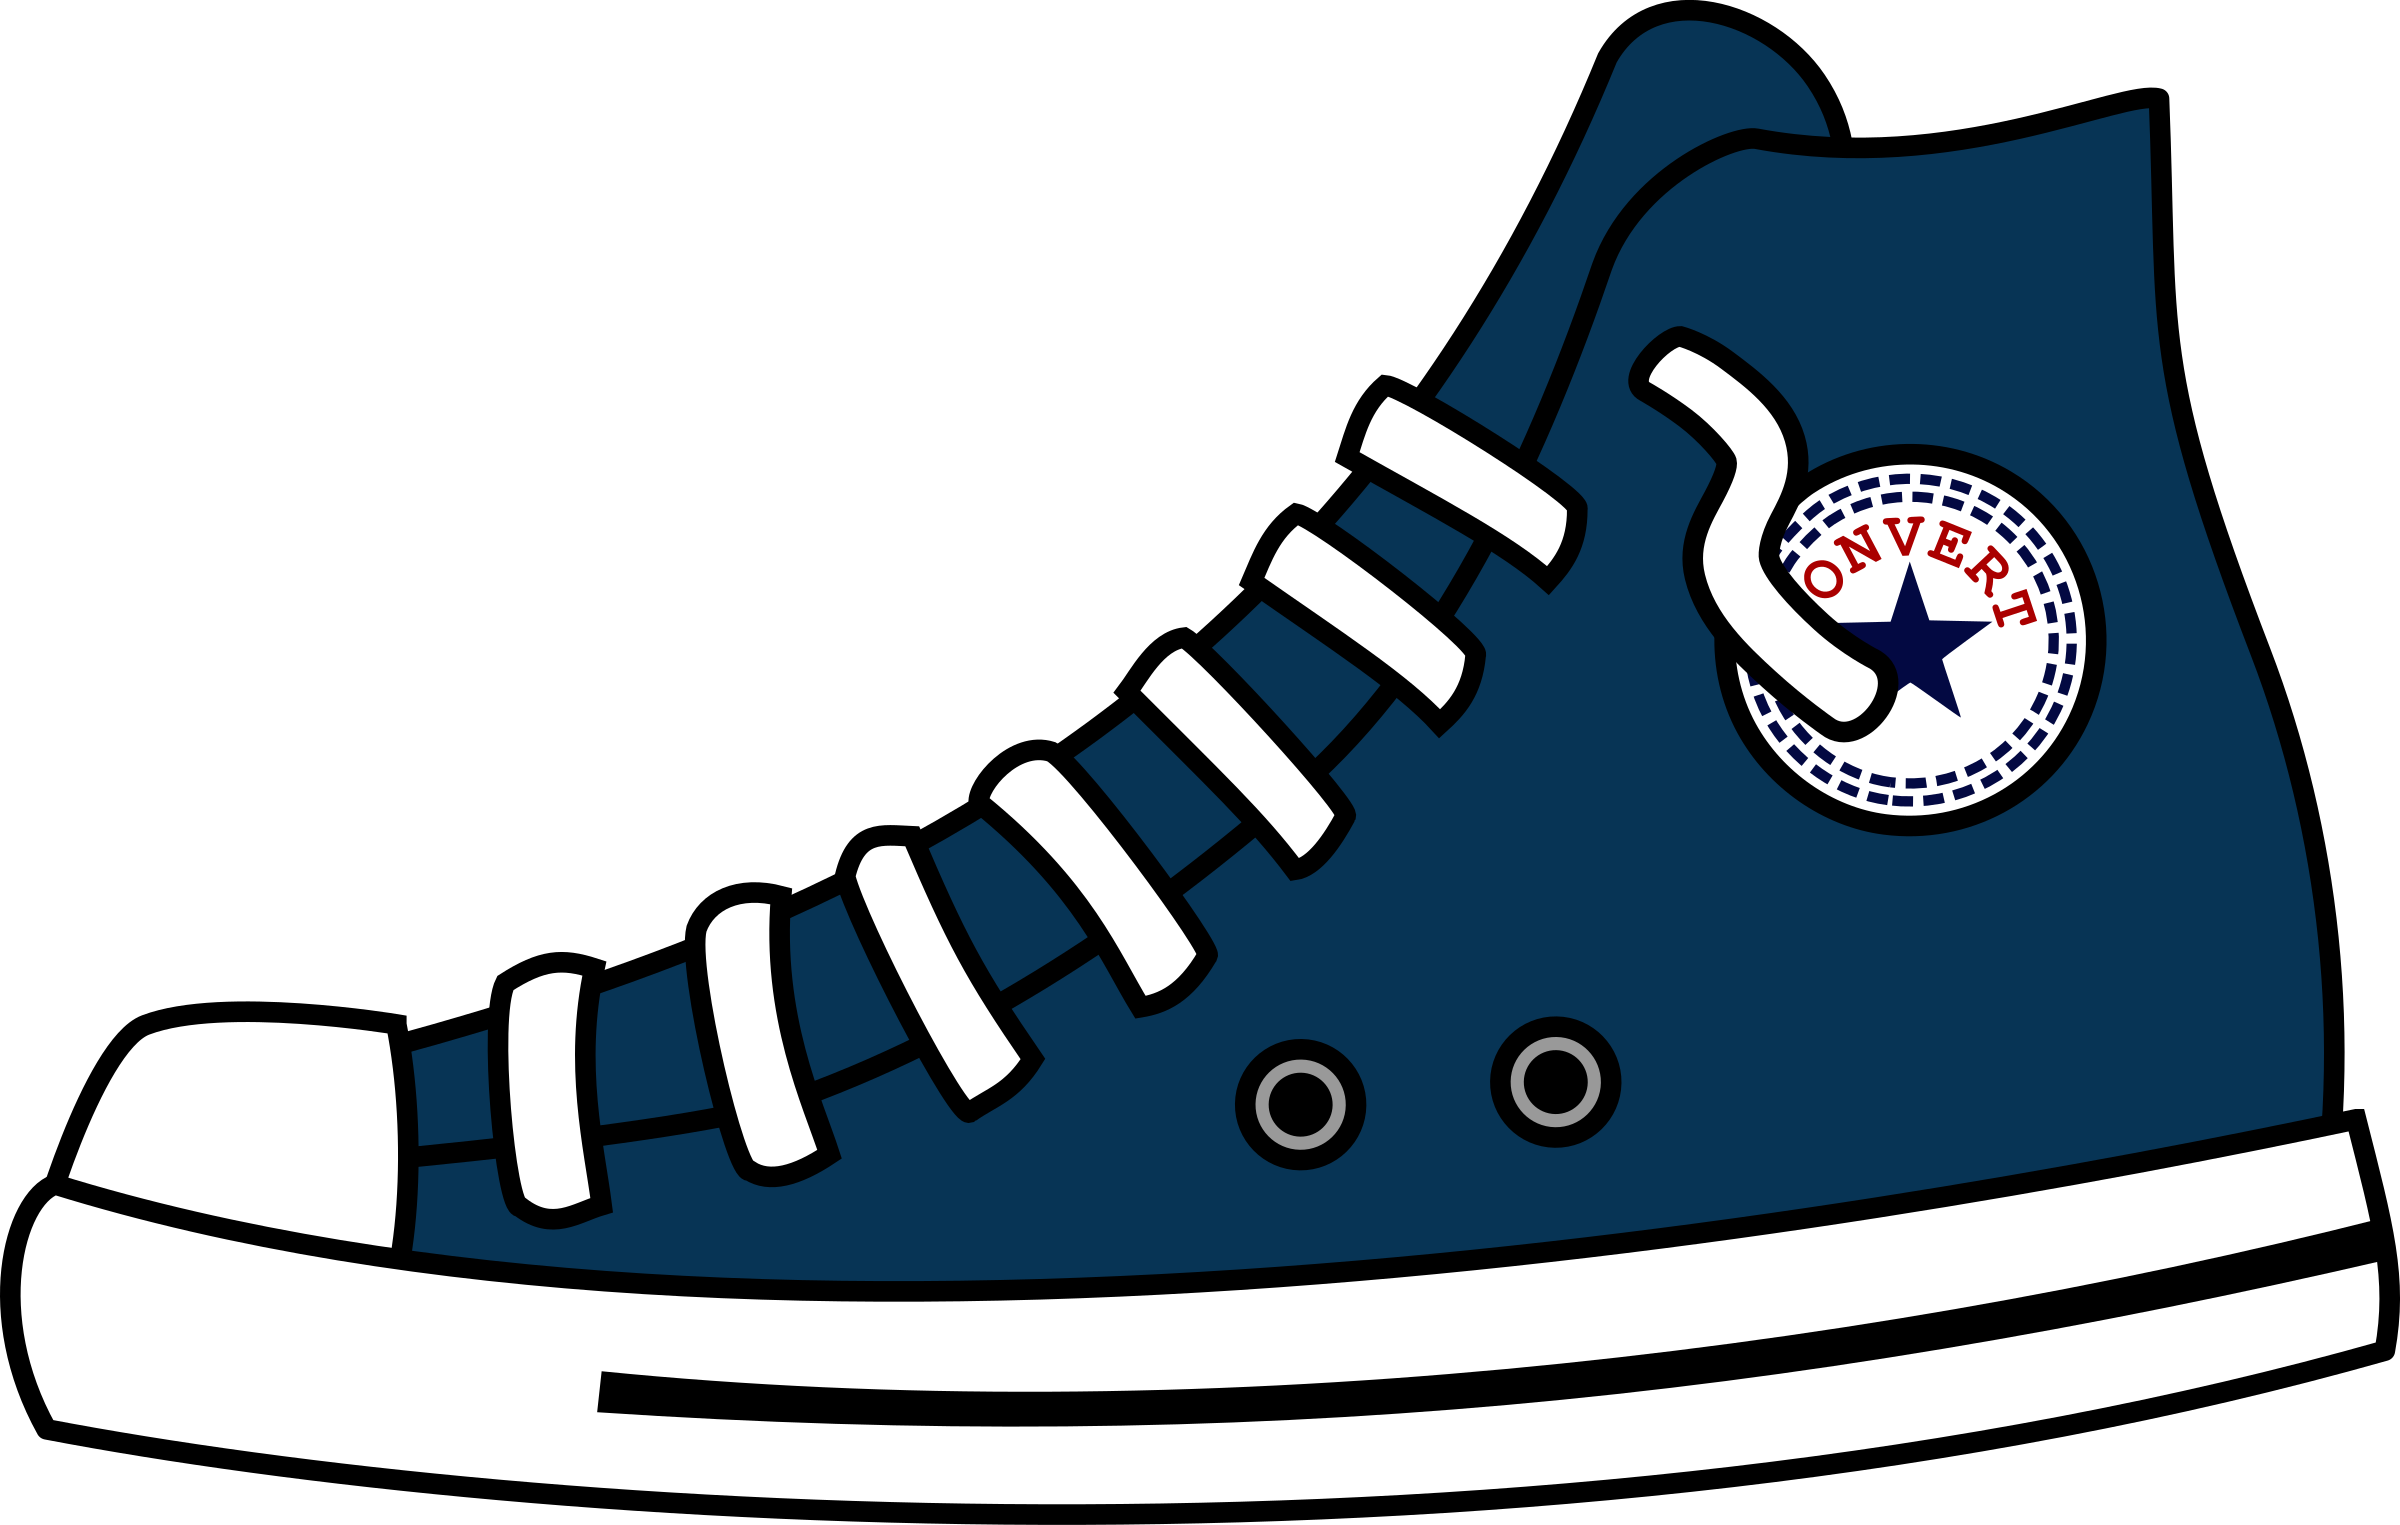 Converse Shoe Clipart at GetDrawings.com.